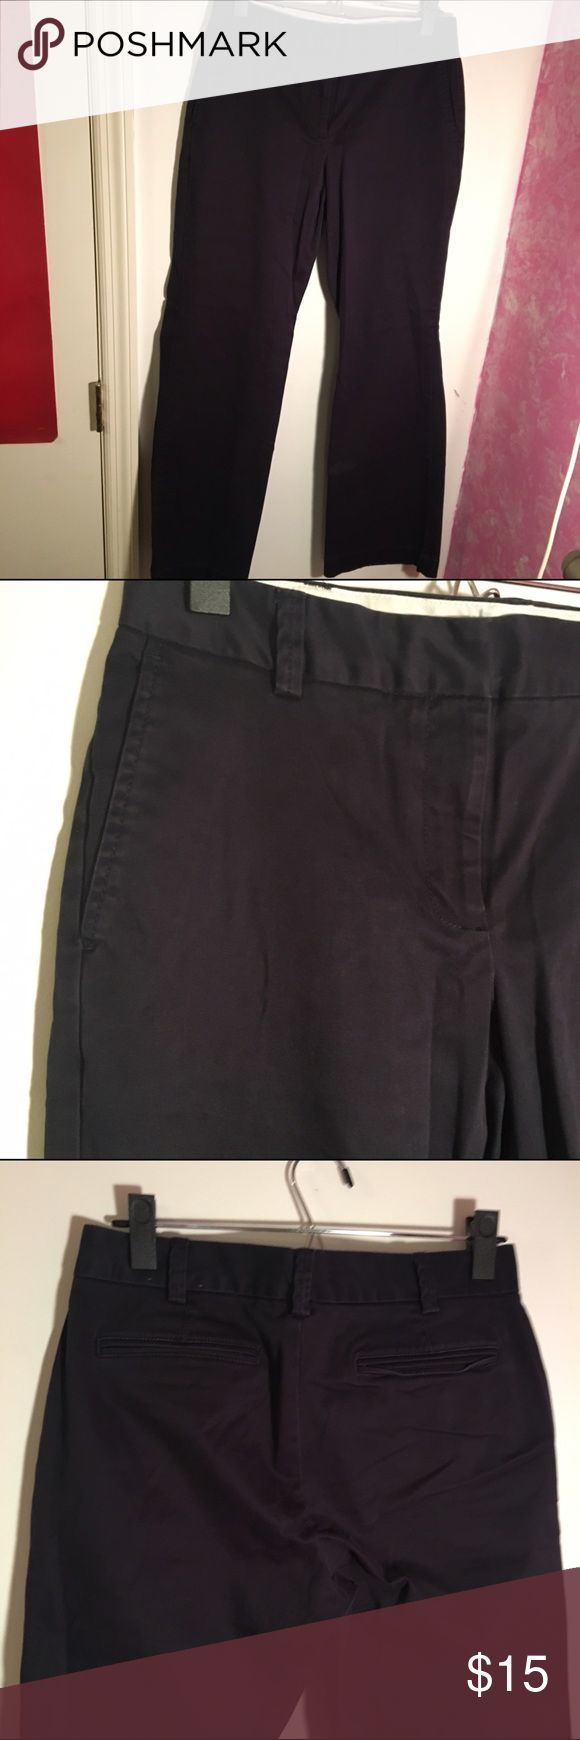 Lands' End Navy Blue Pants Very good quality navy blue pants. Back pockets are for decoration only and are not functional. 98% cotton, 2% spandex. Fit 2 - Size 4. Lands' End Pants Trousers